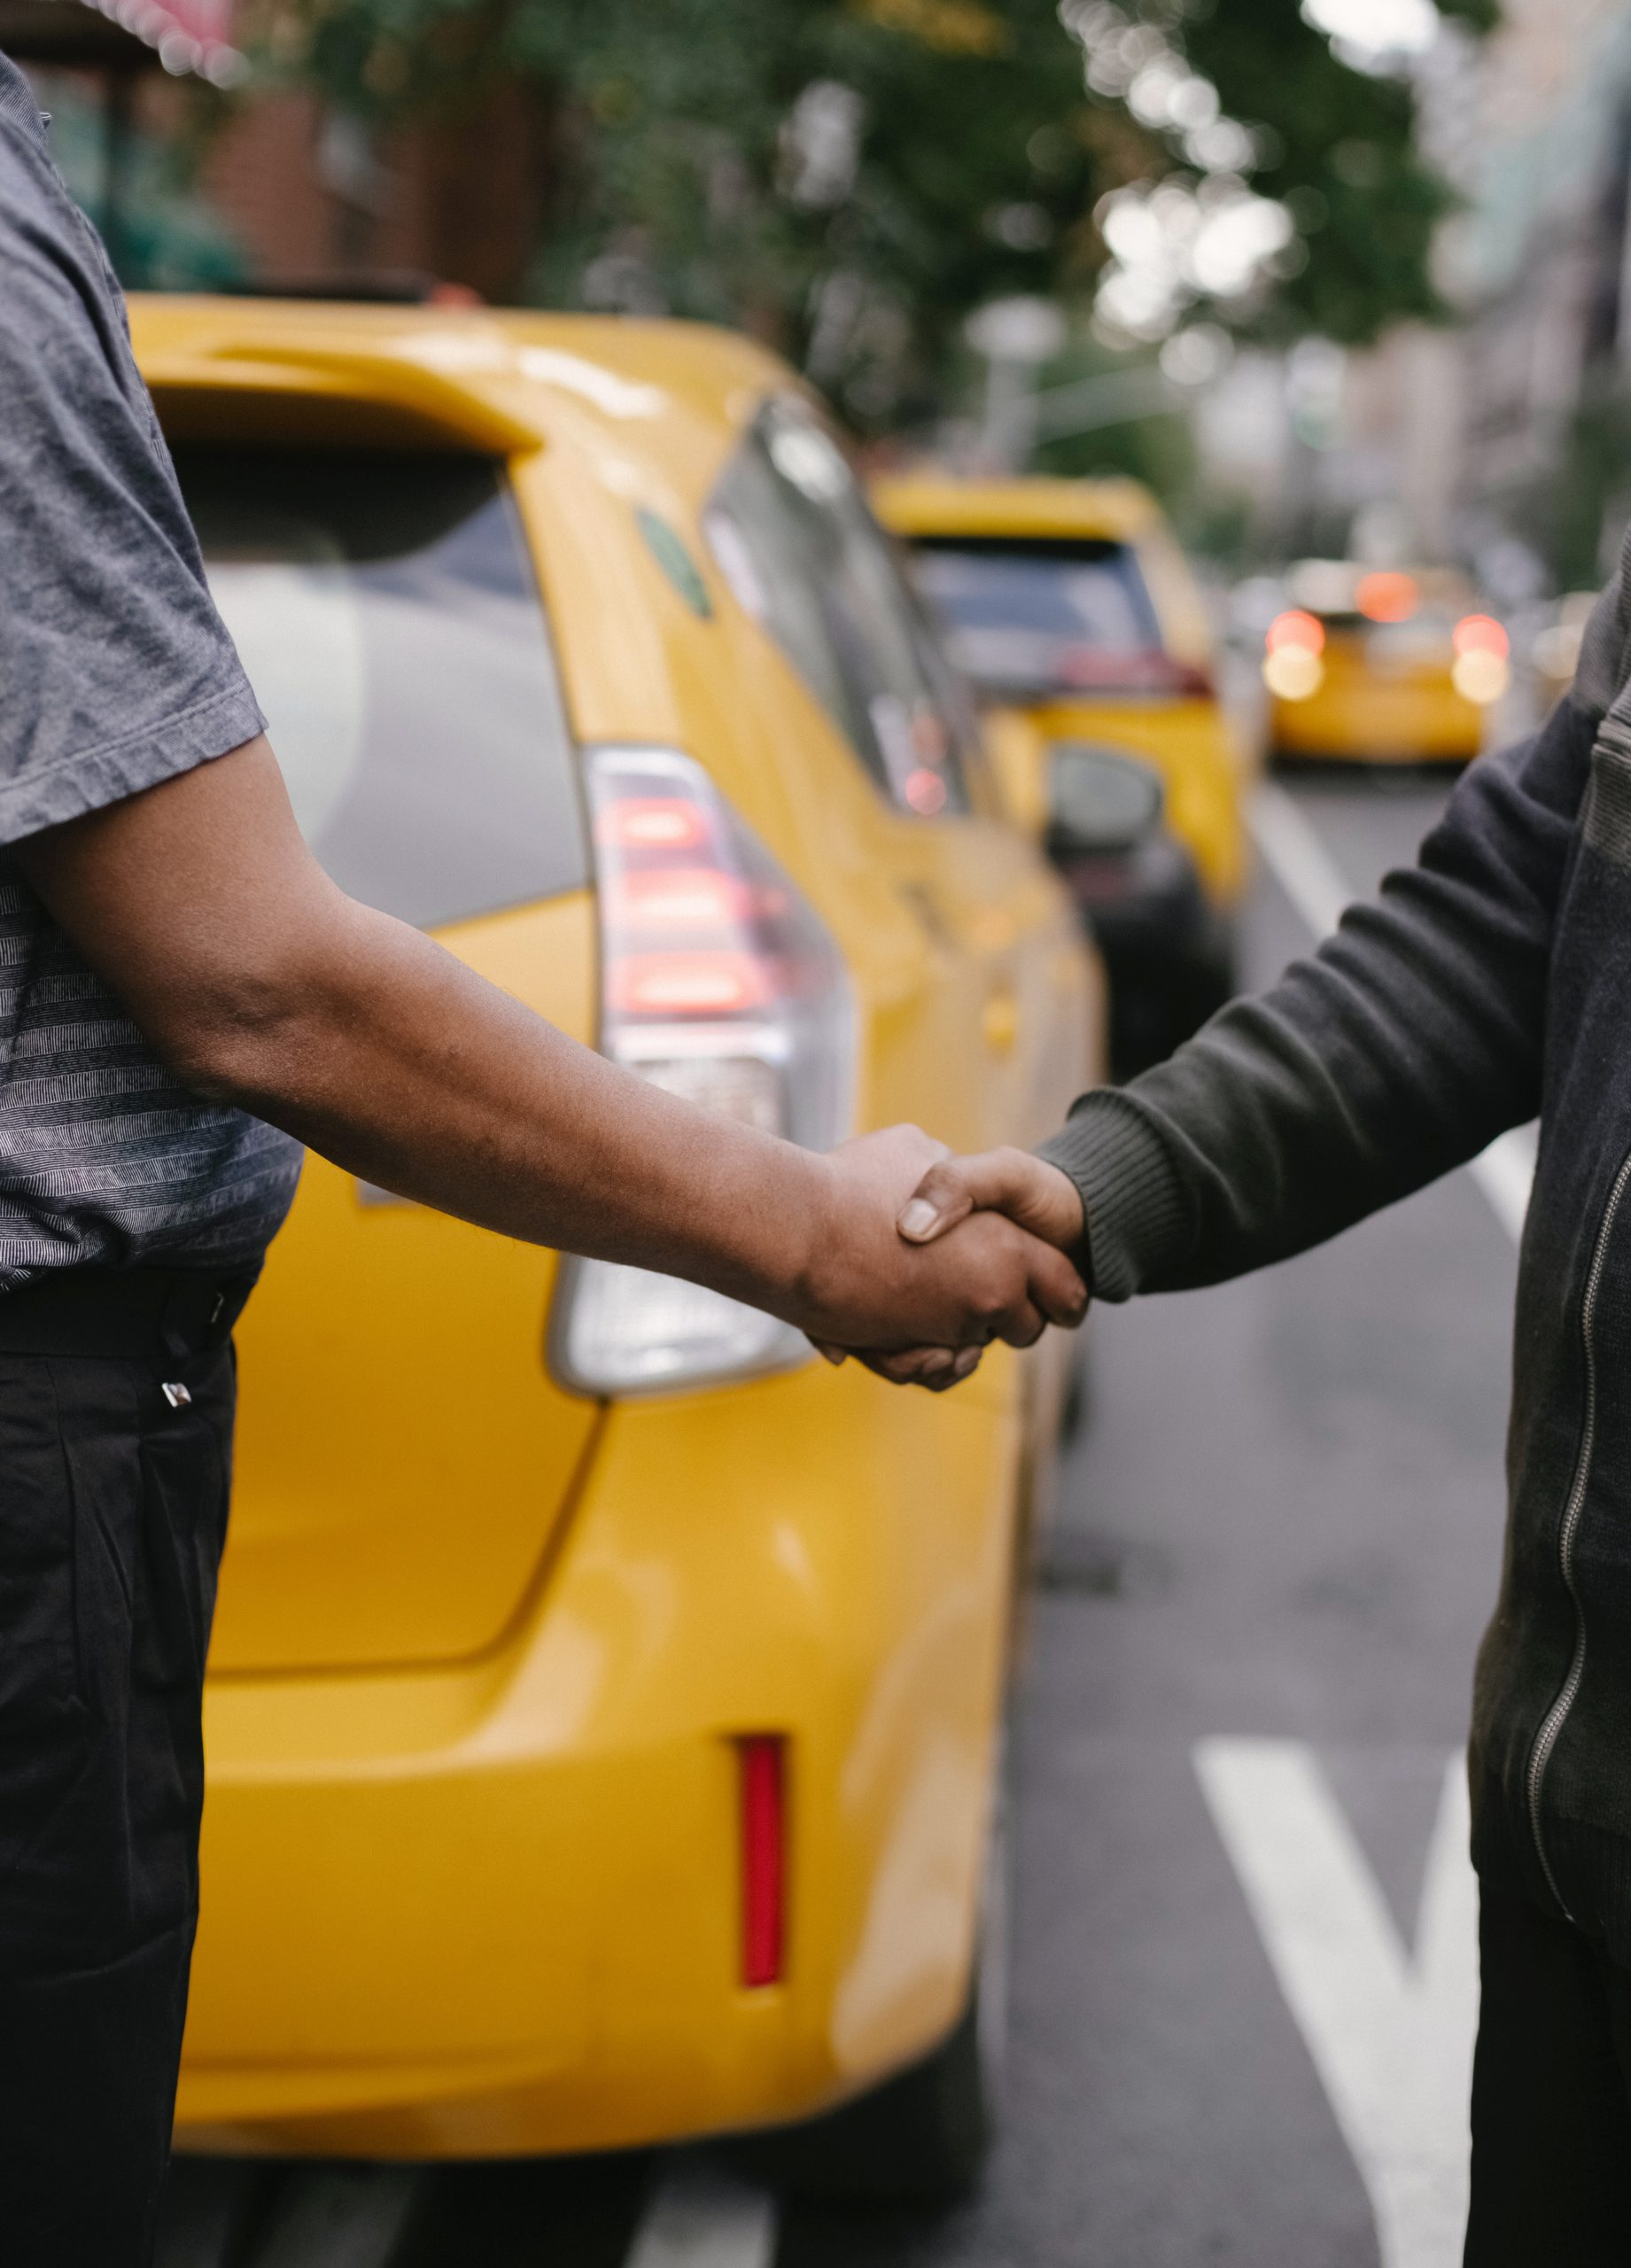 2 men shaking hands on a street with yellow parked cars